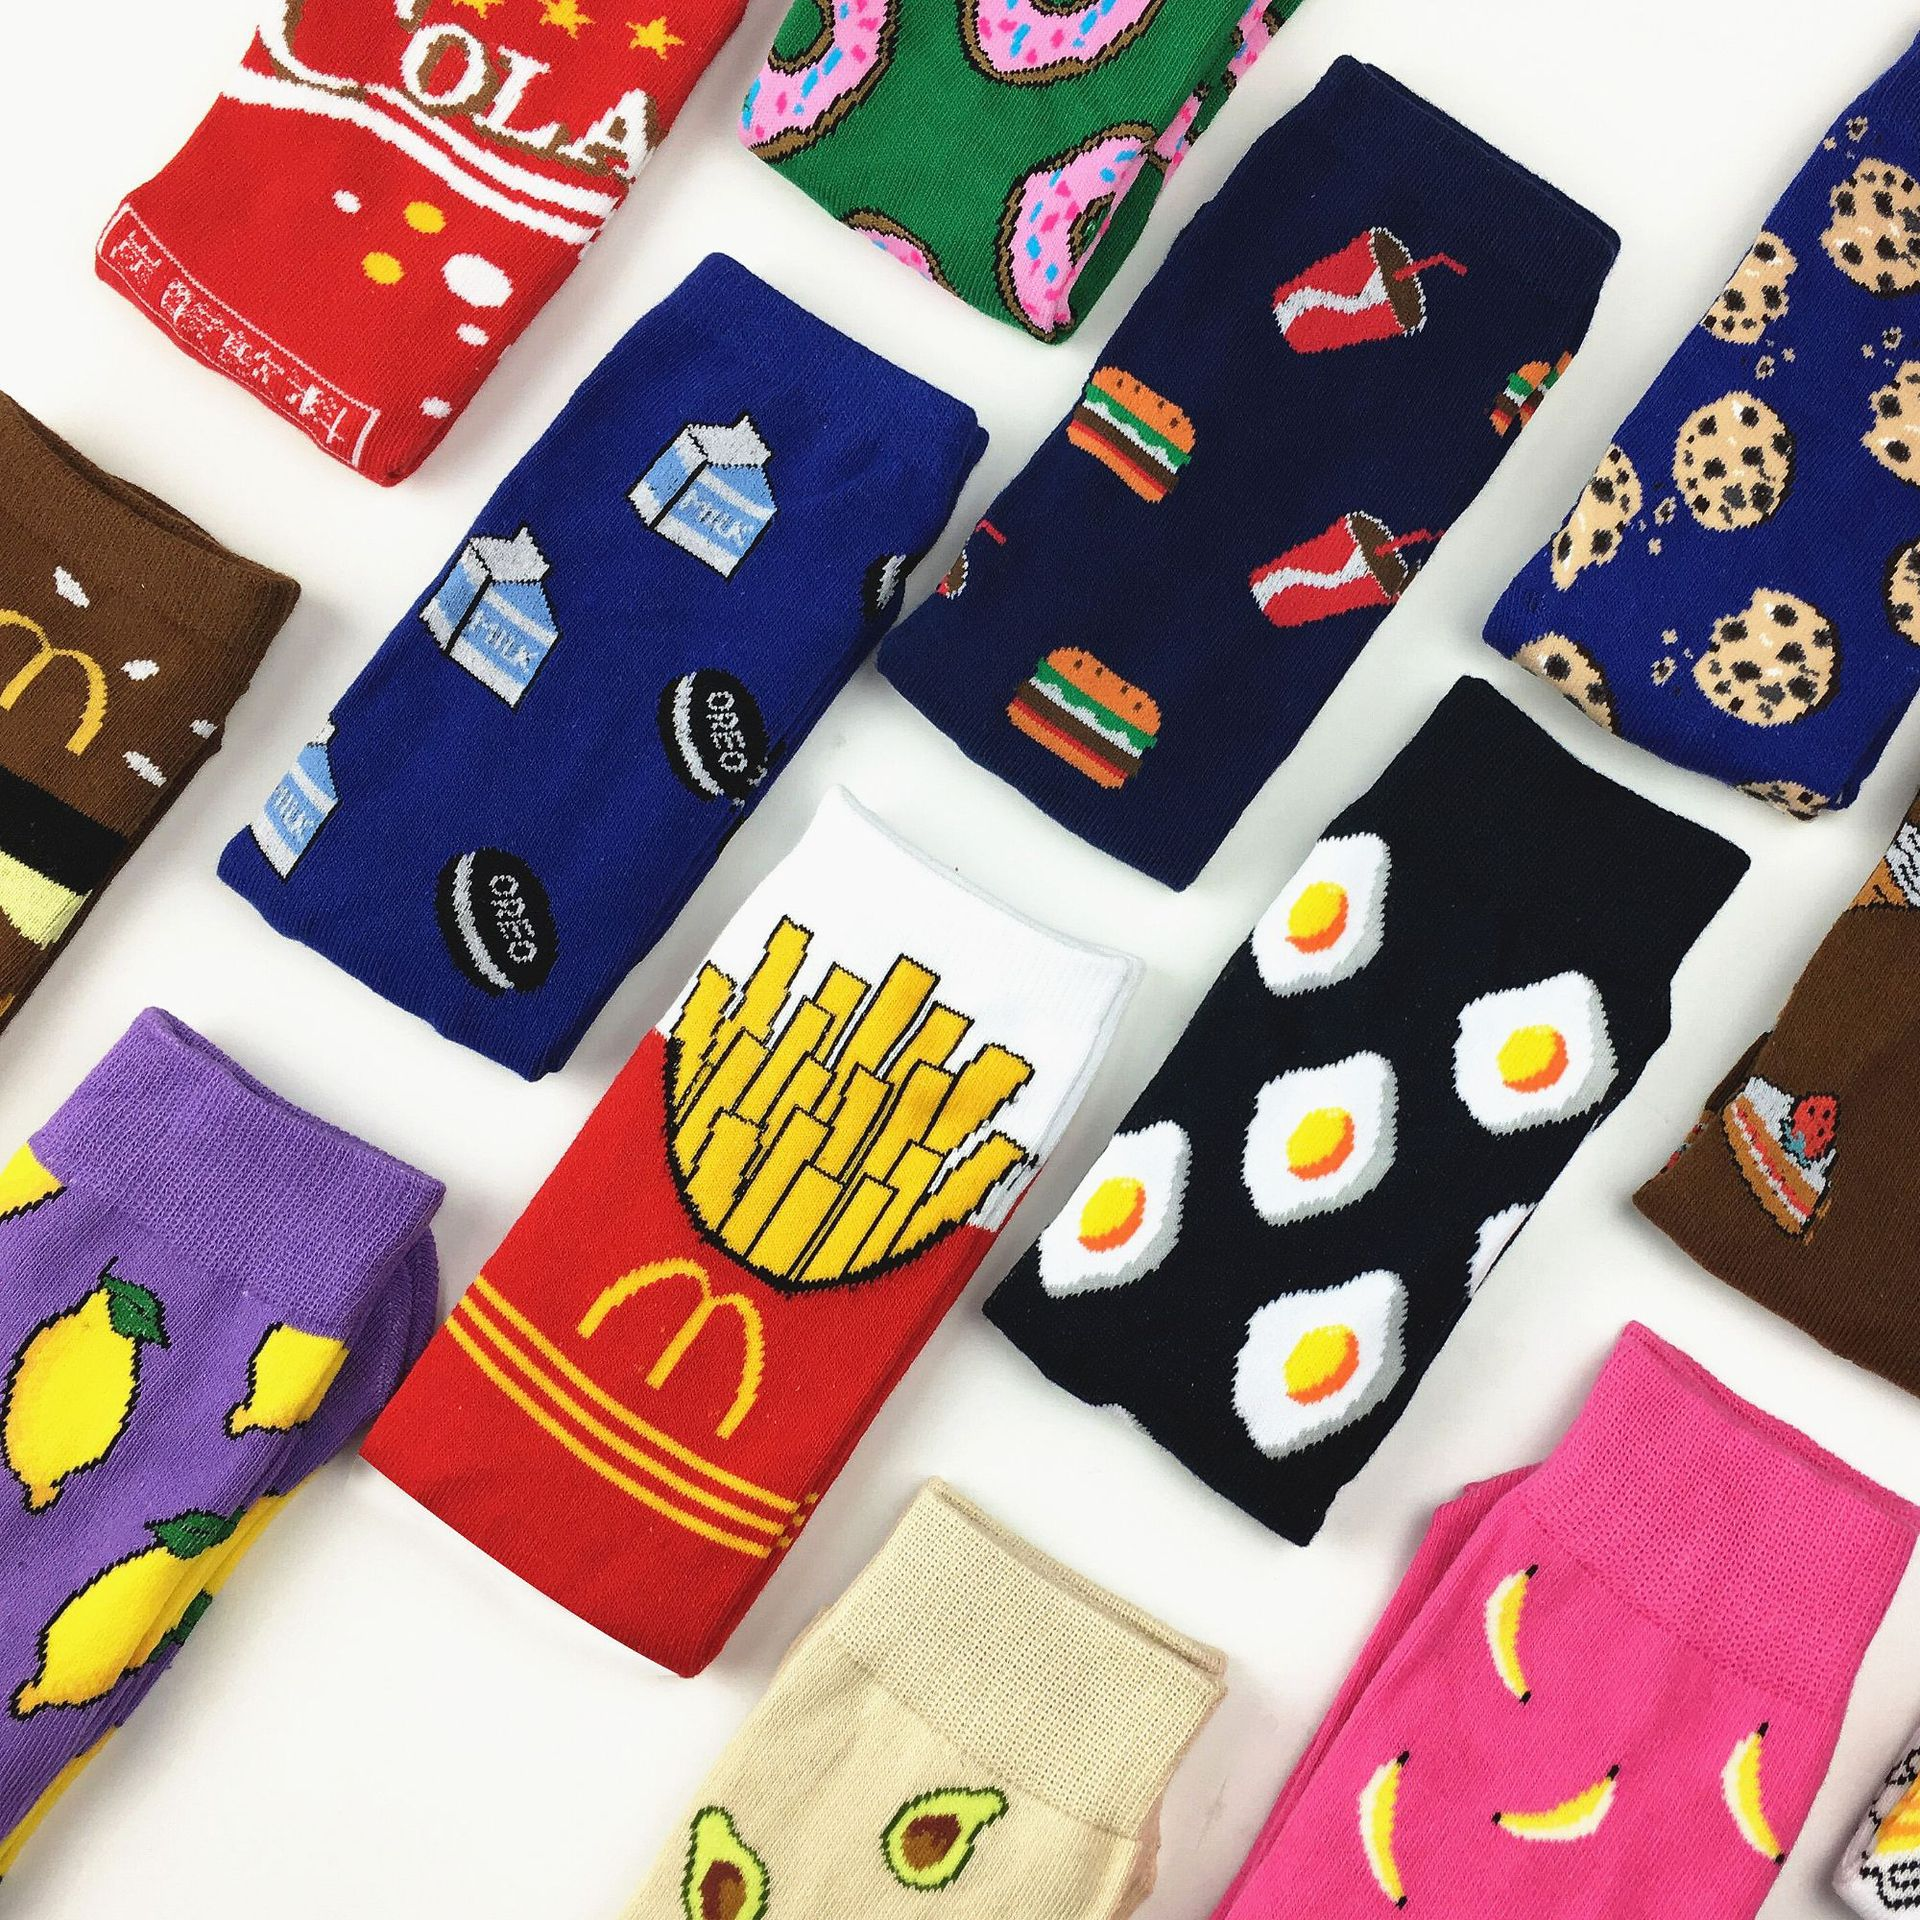 Women Socks Funny Cute Cartoon Fruits Banana Avocado Lemon Egg Cookie Donuts Food Happy Colorful Novelty Skateboard Socks